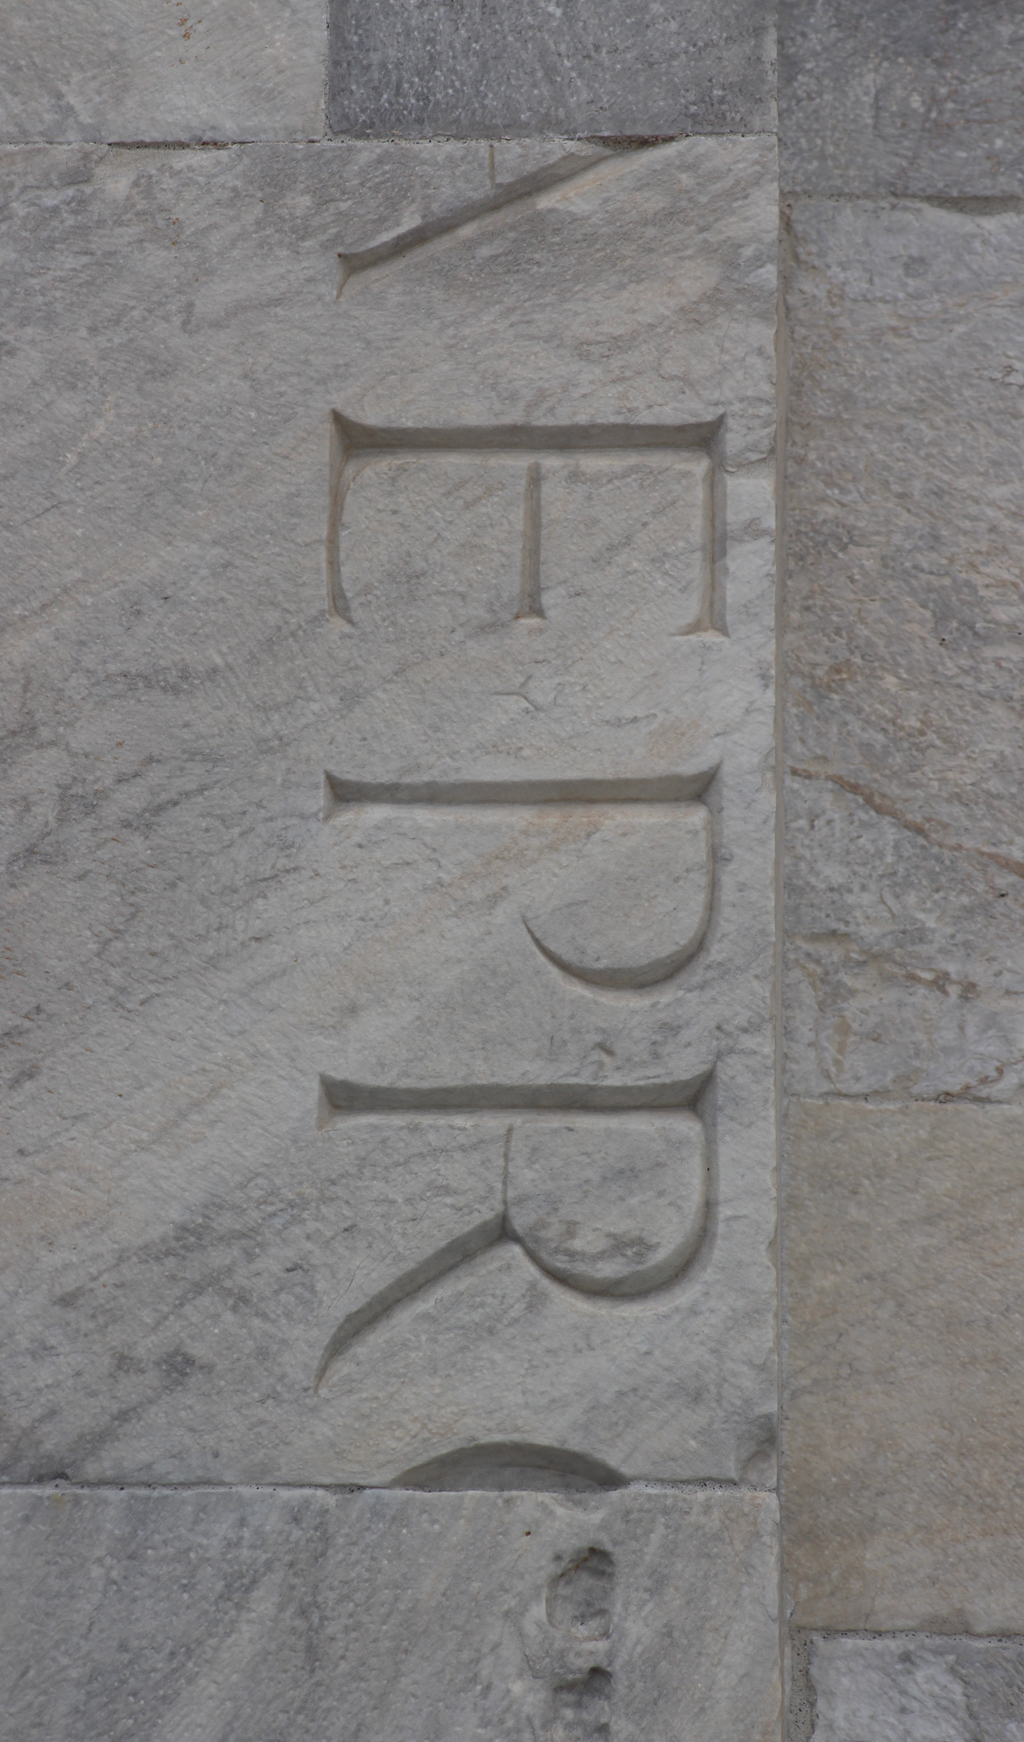 Spolia (reused stones) on the side of the Cattedrale, Pisa.